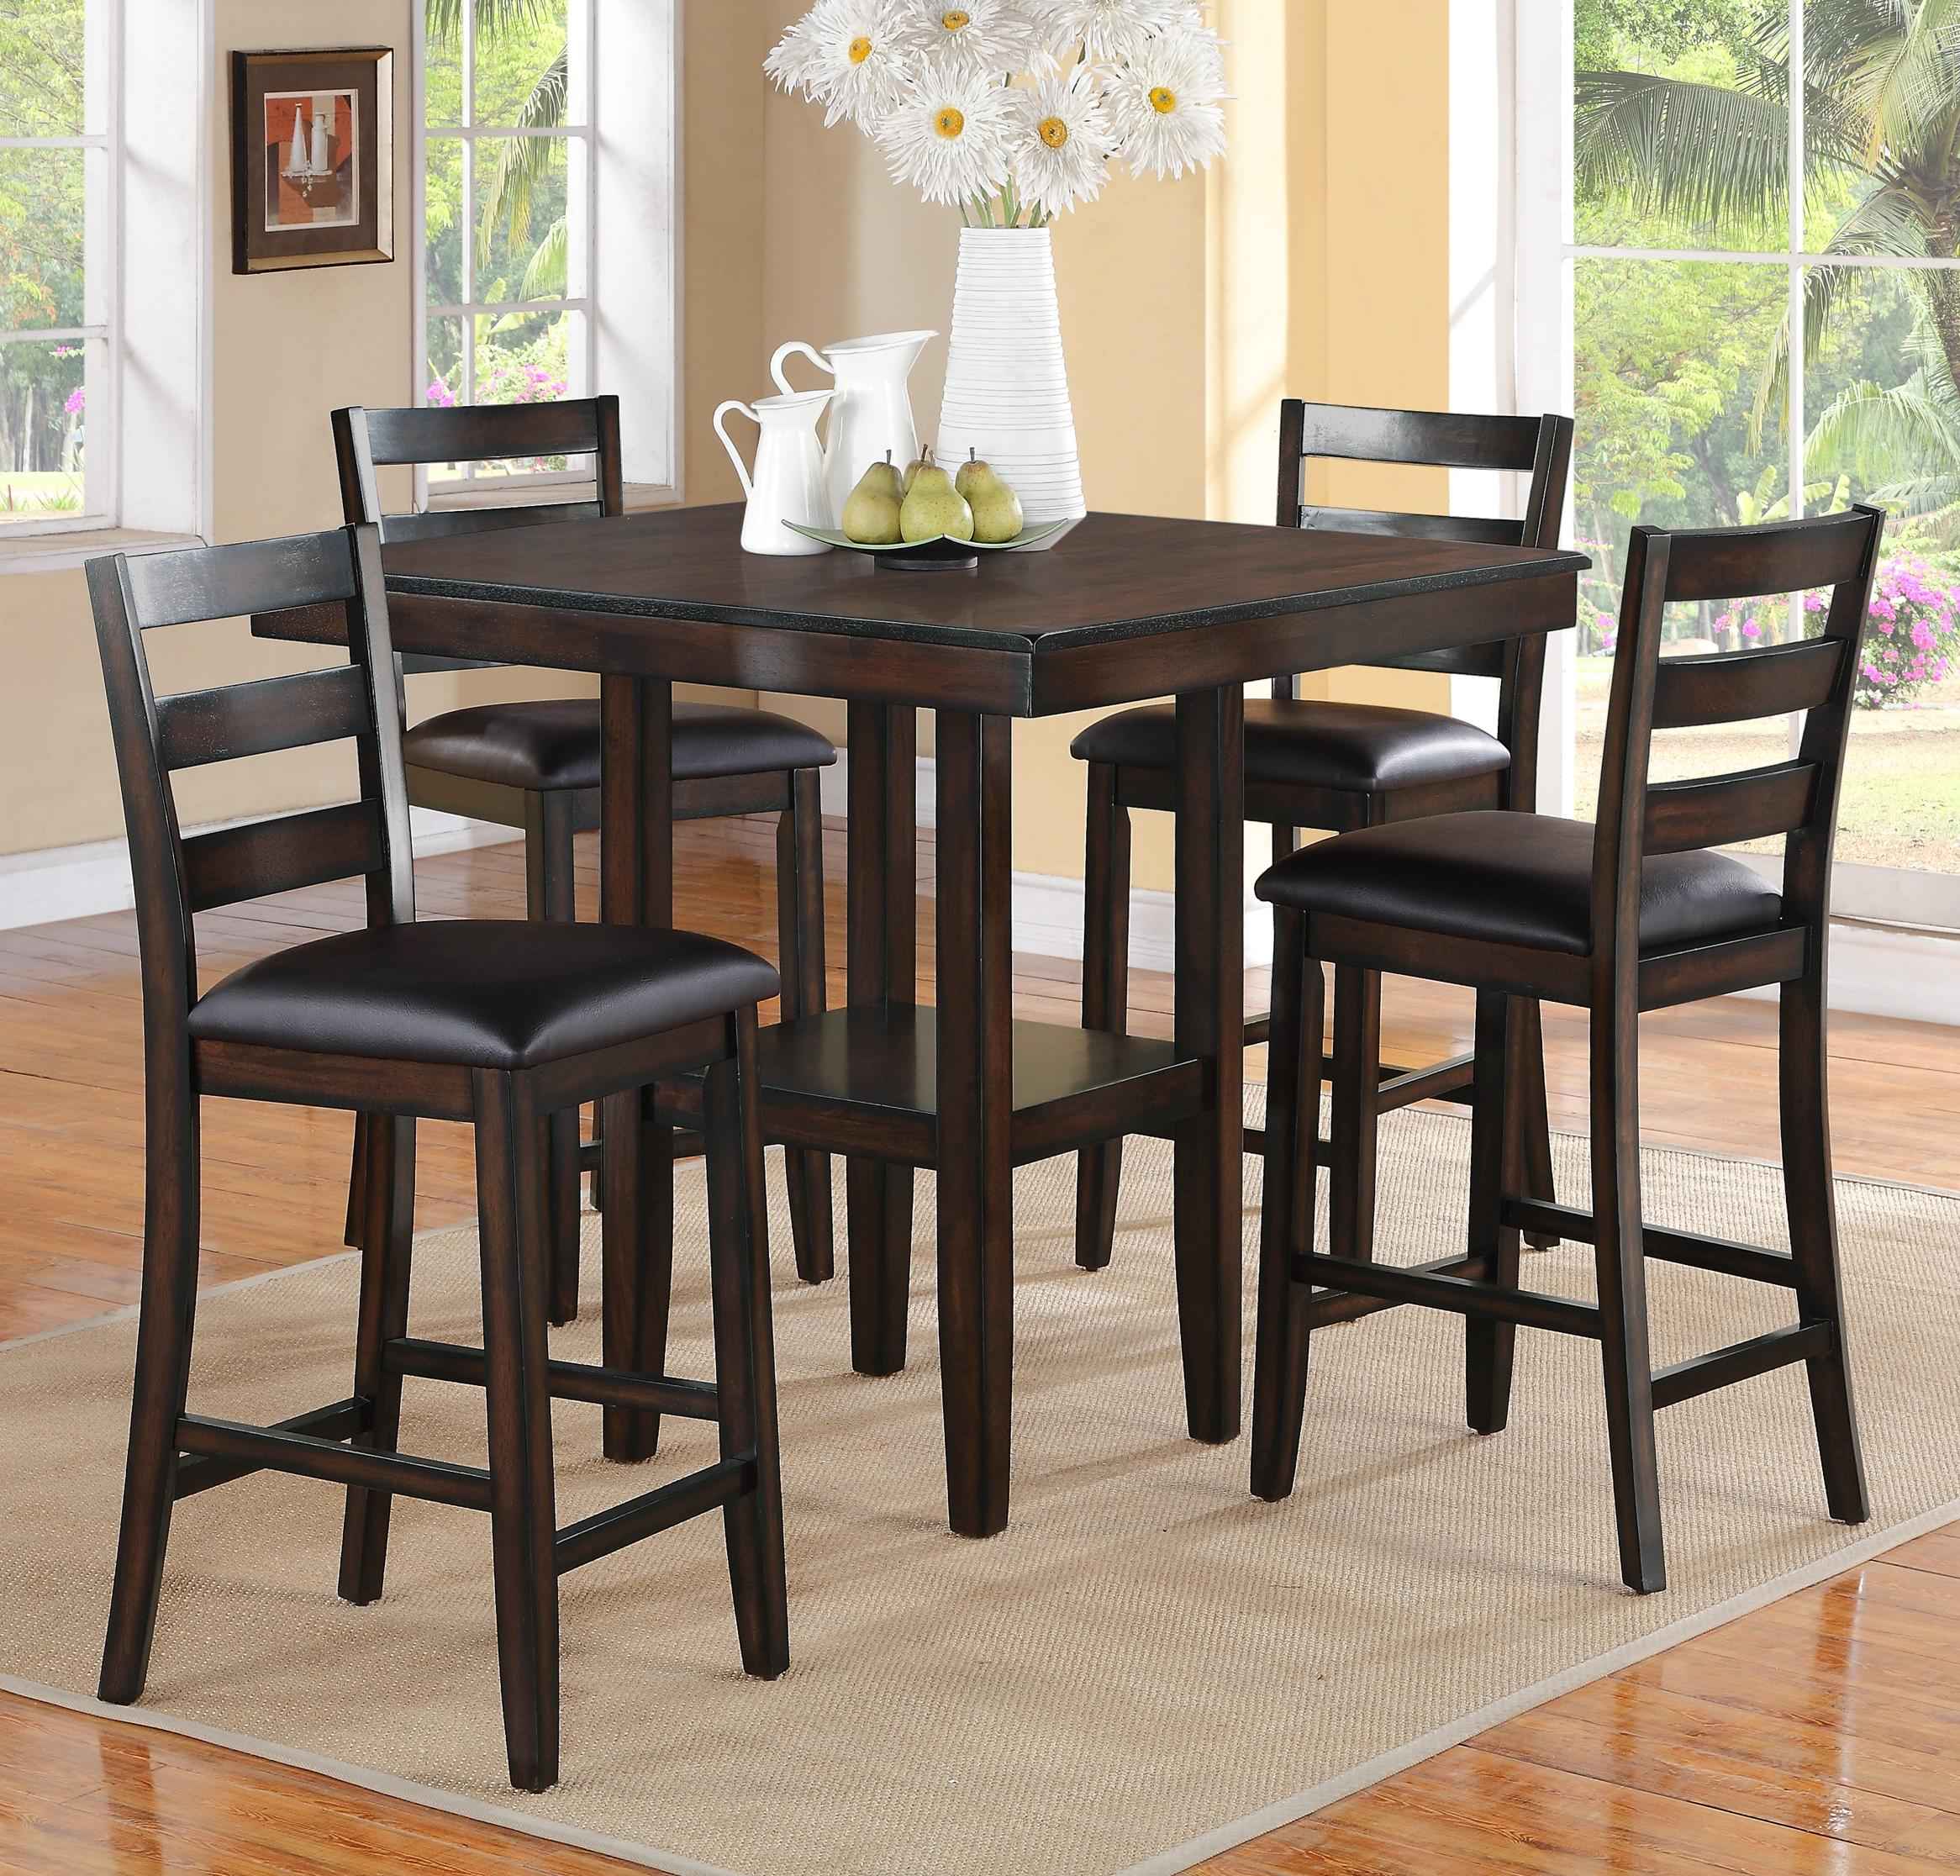 Crown Mark Tahoe 5 Piece Counter Height Table And Chairs Set Darvin Furniture Pub Table And